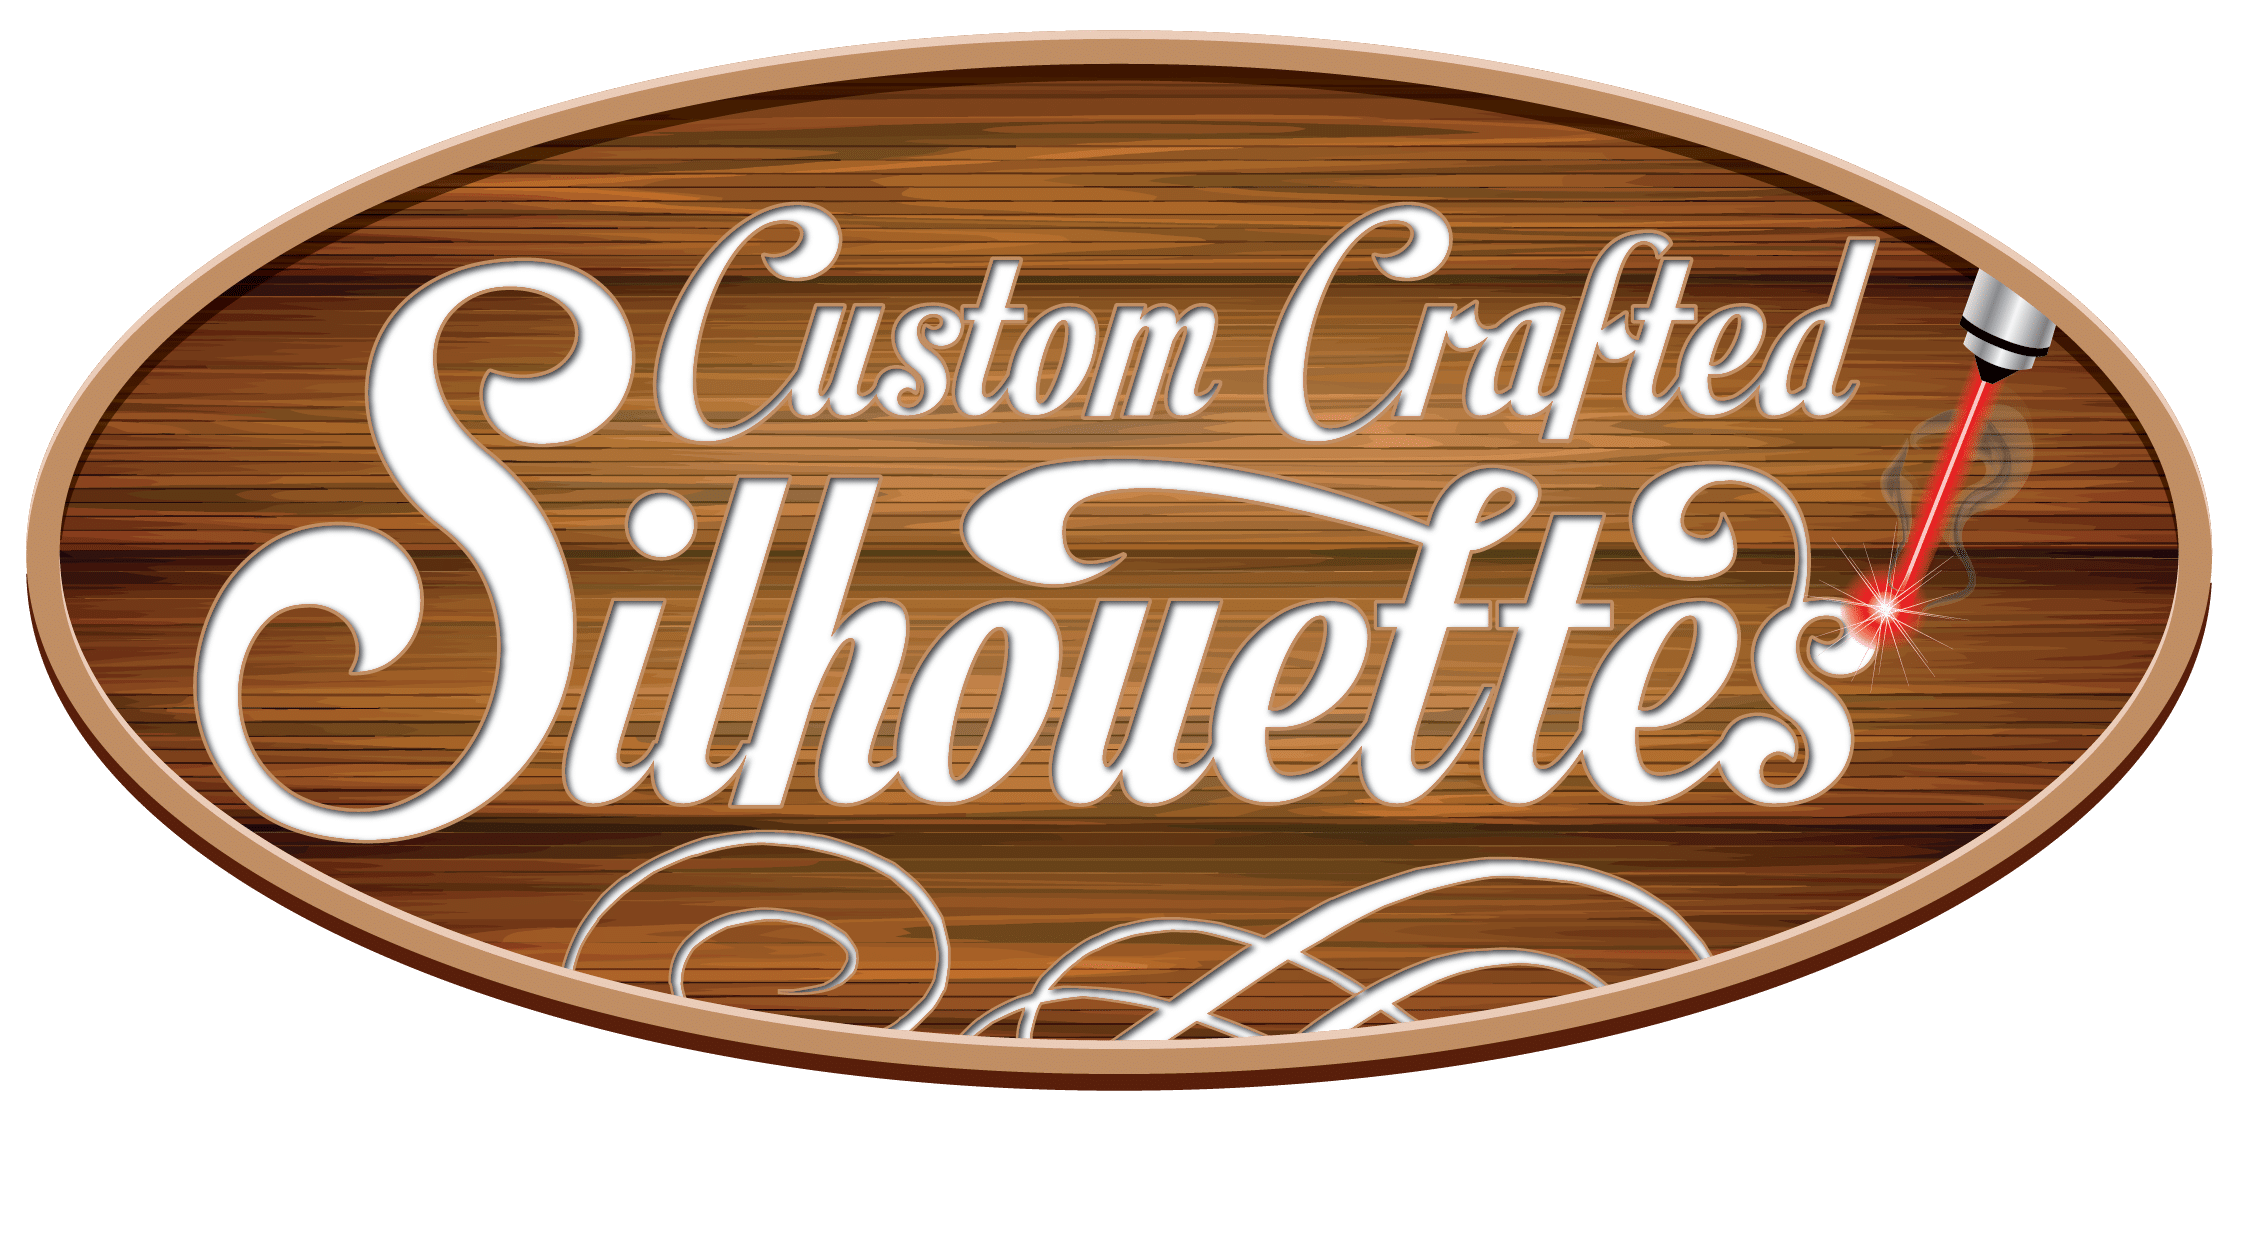 Custom Crafted Silhouettes Logo